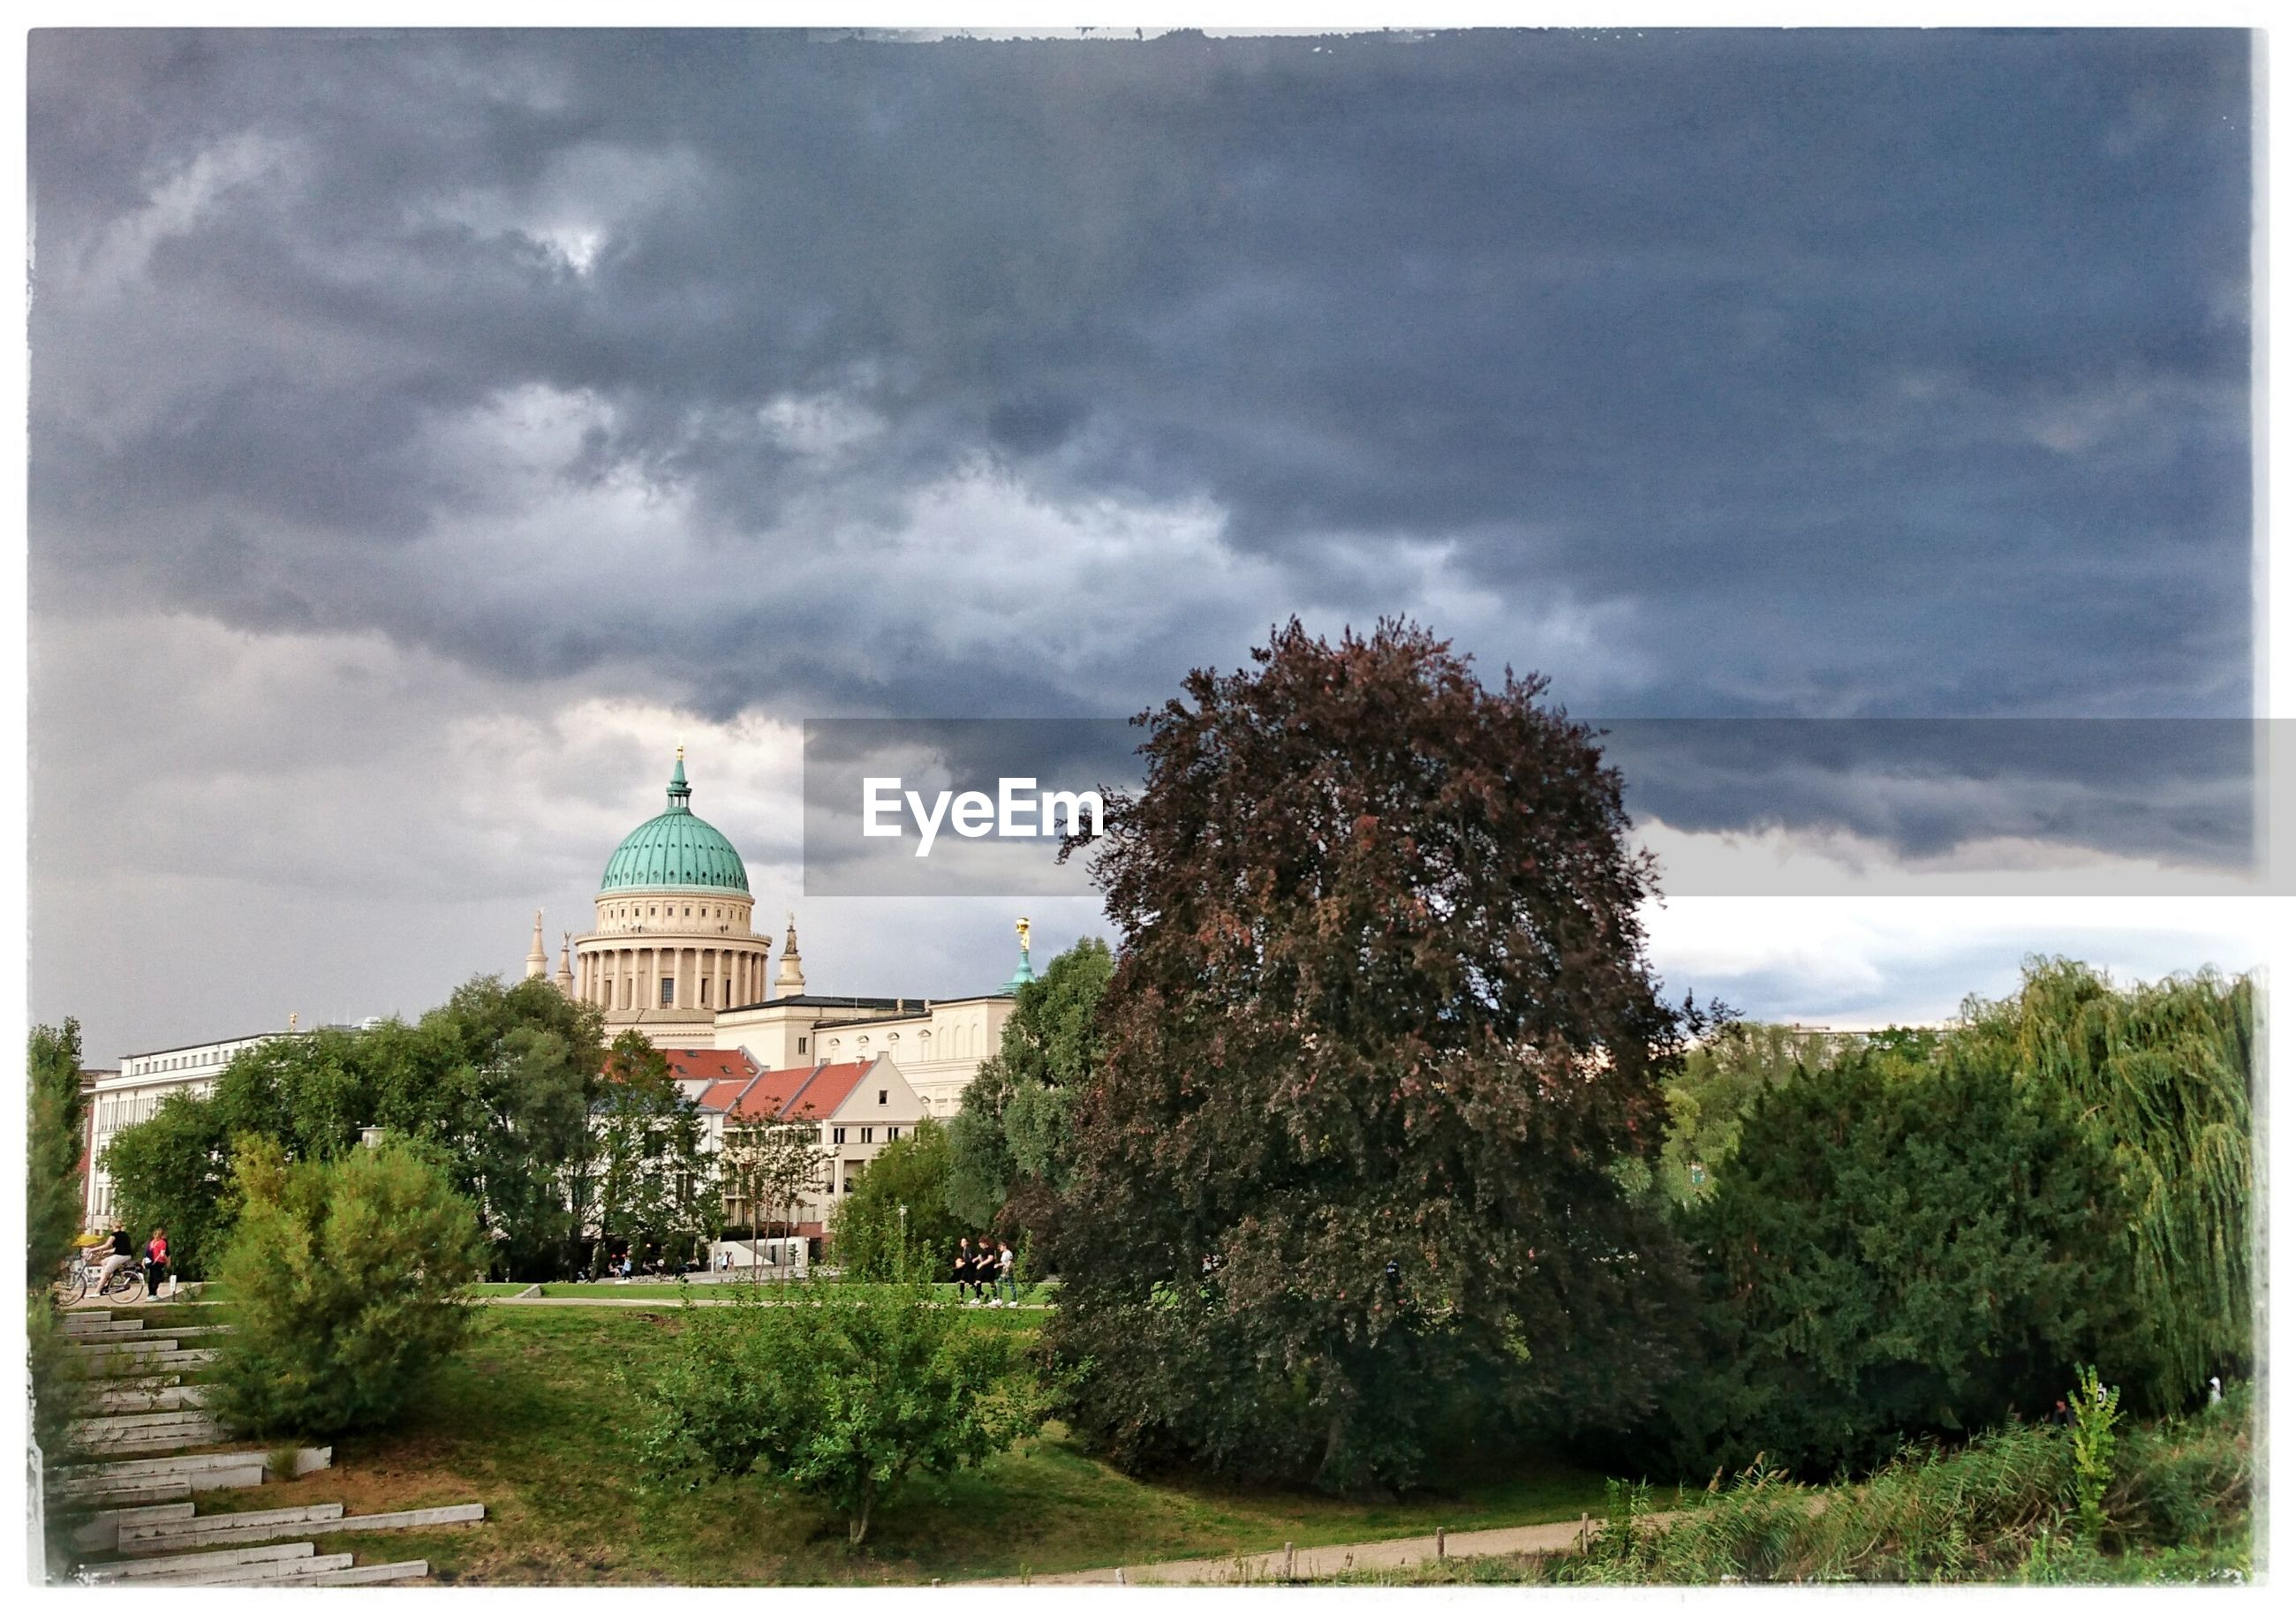 tree, architecture, built structure, building exterior, sky, cloud - sky, auto post production filter, religion, cloudy, plant, growth, cloud, dome, outdoors, church, travel destinations, place of worship, nature, storm cloud, tranquil scene, day, tranquility, history, spire, scenics, lawn, the past, garden, formal garden